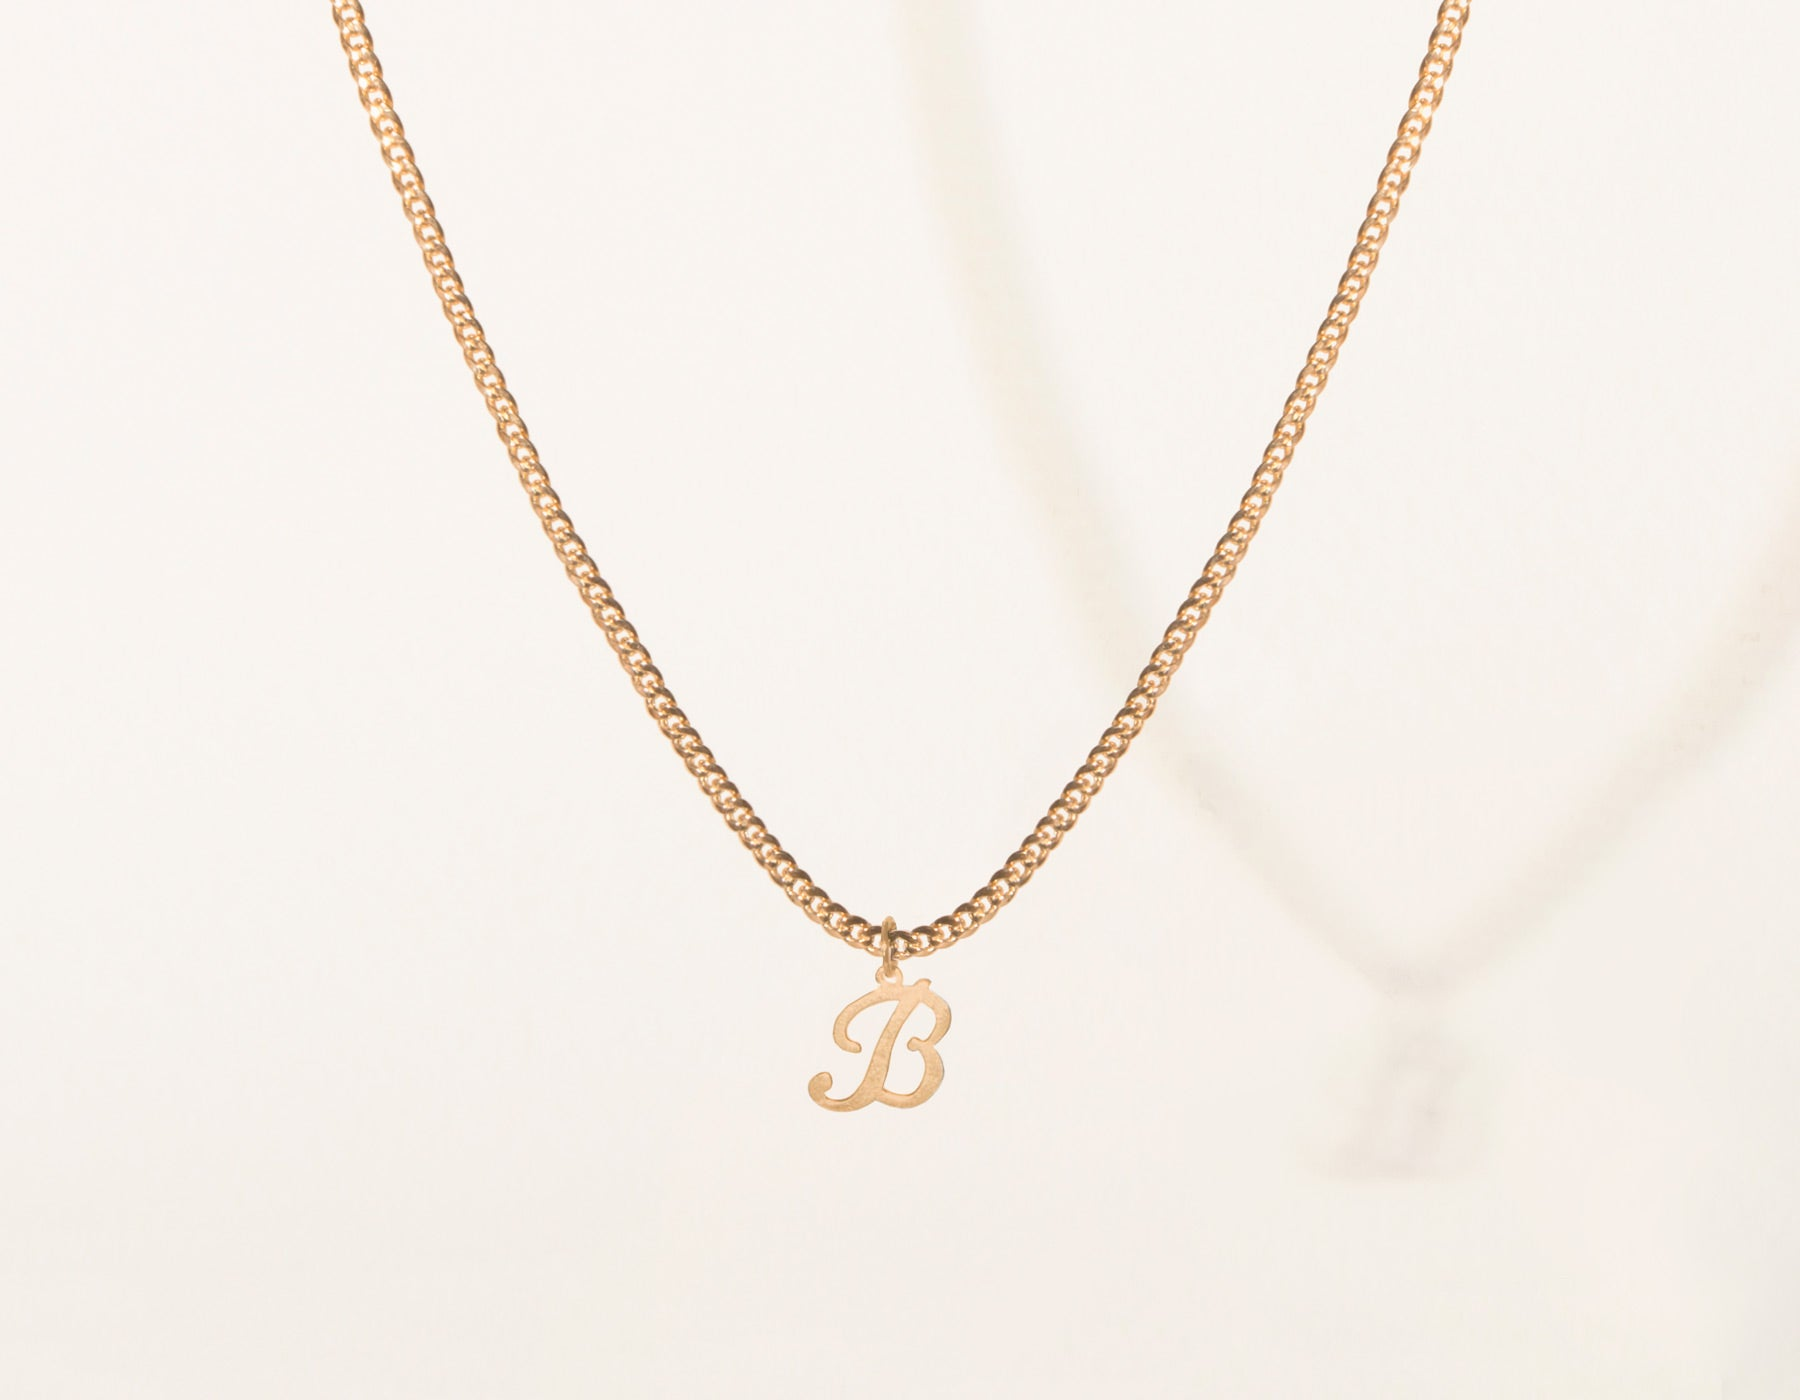 Vrai and Oro Cuban Link Chain Letter Pendant 14k Solid rose gold